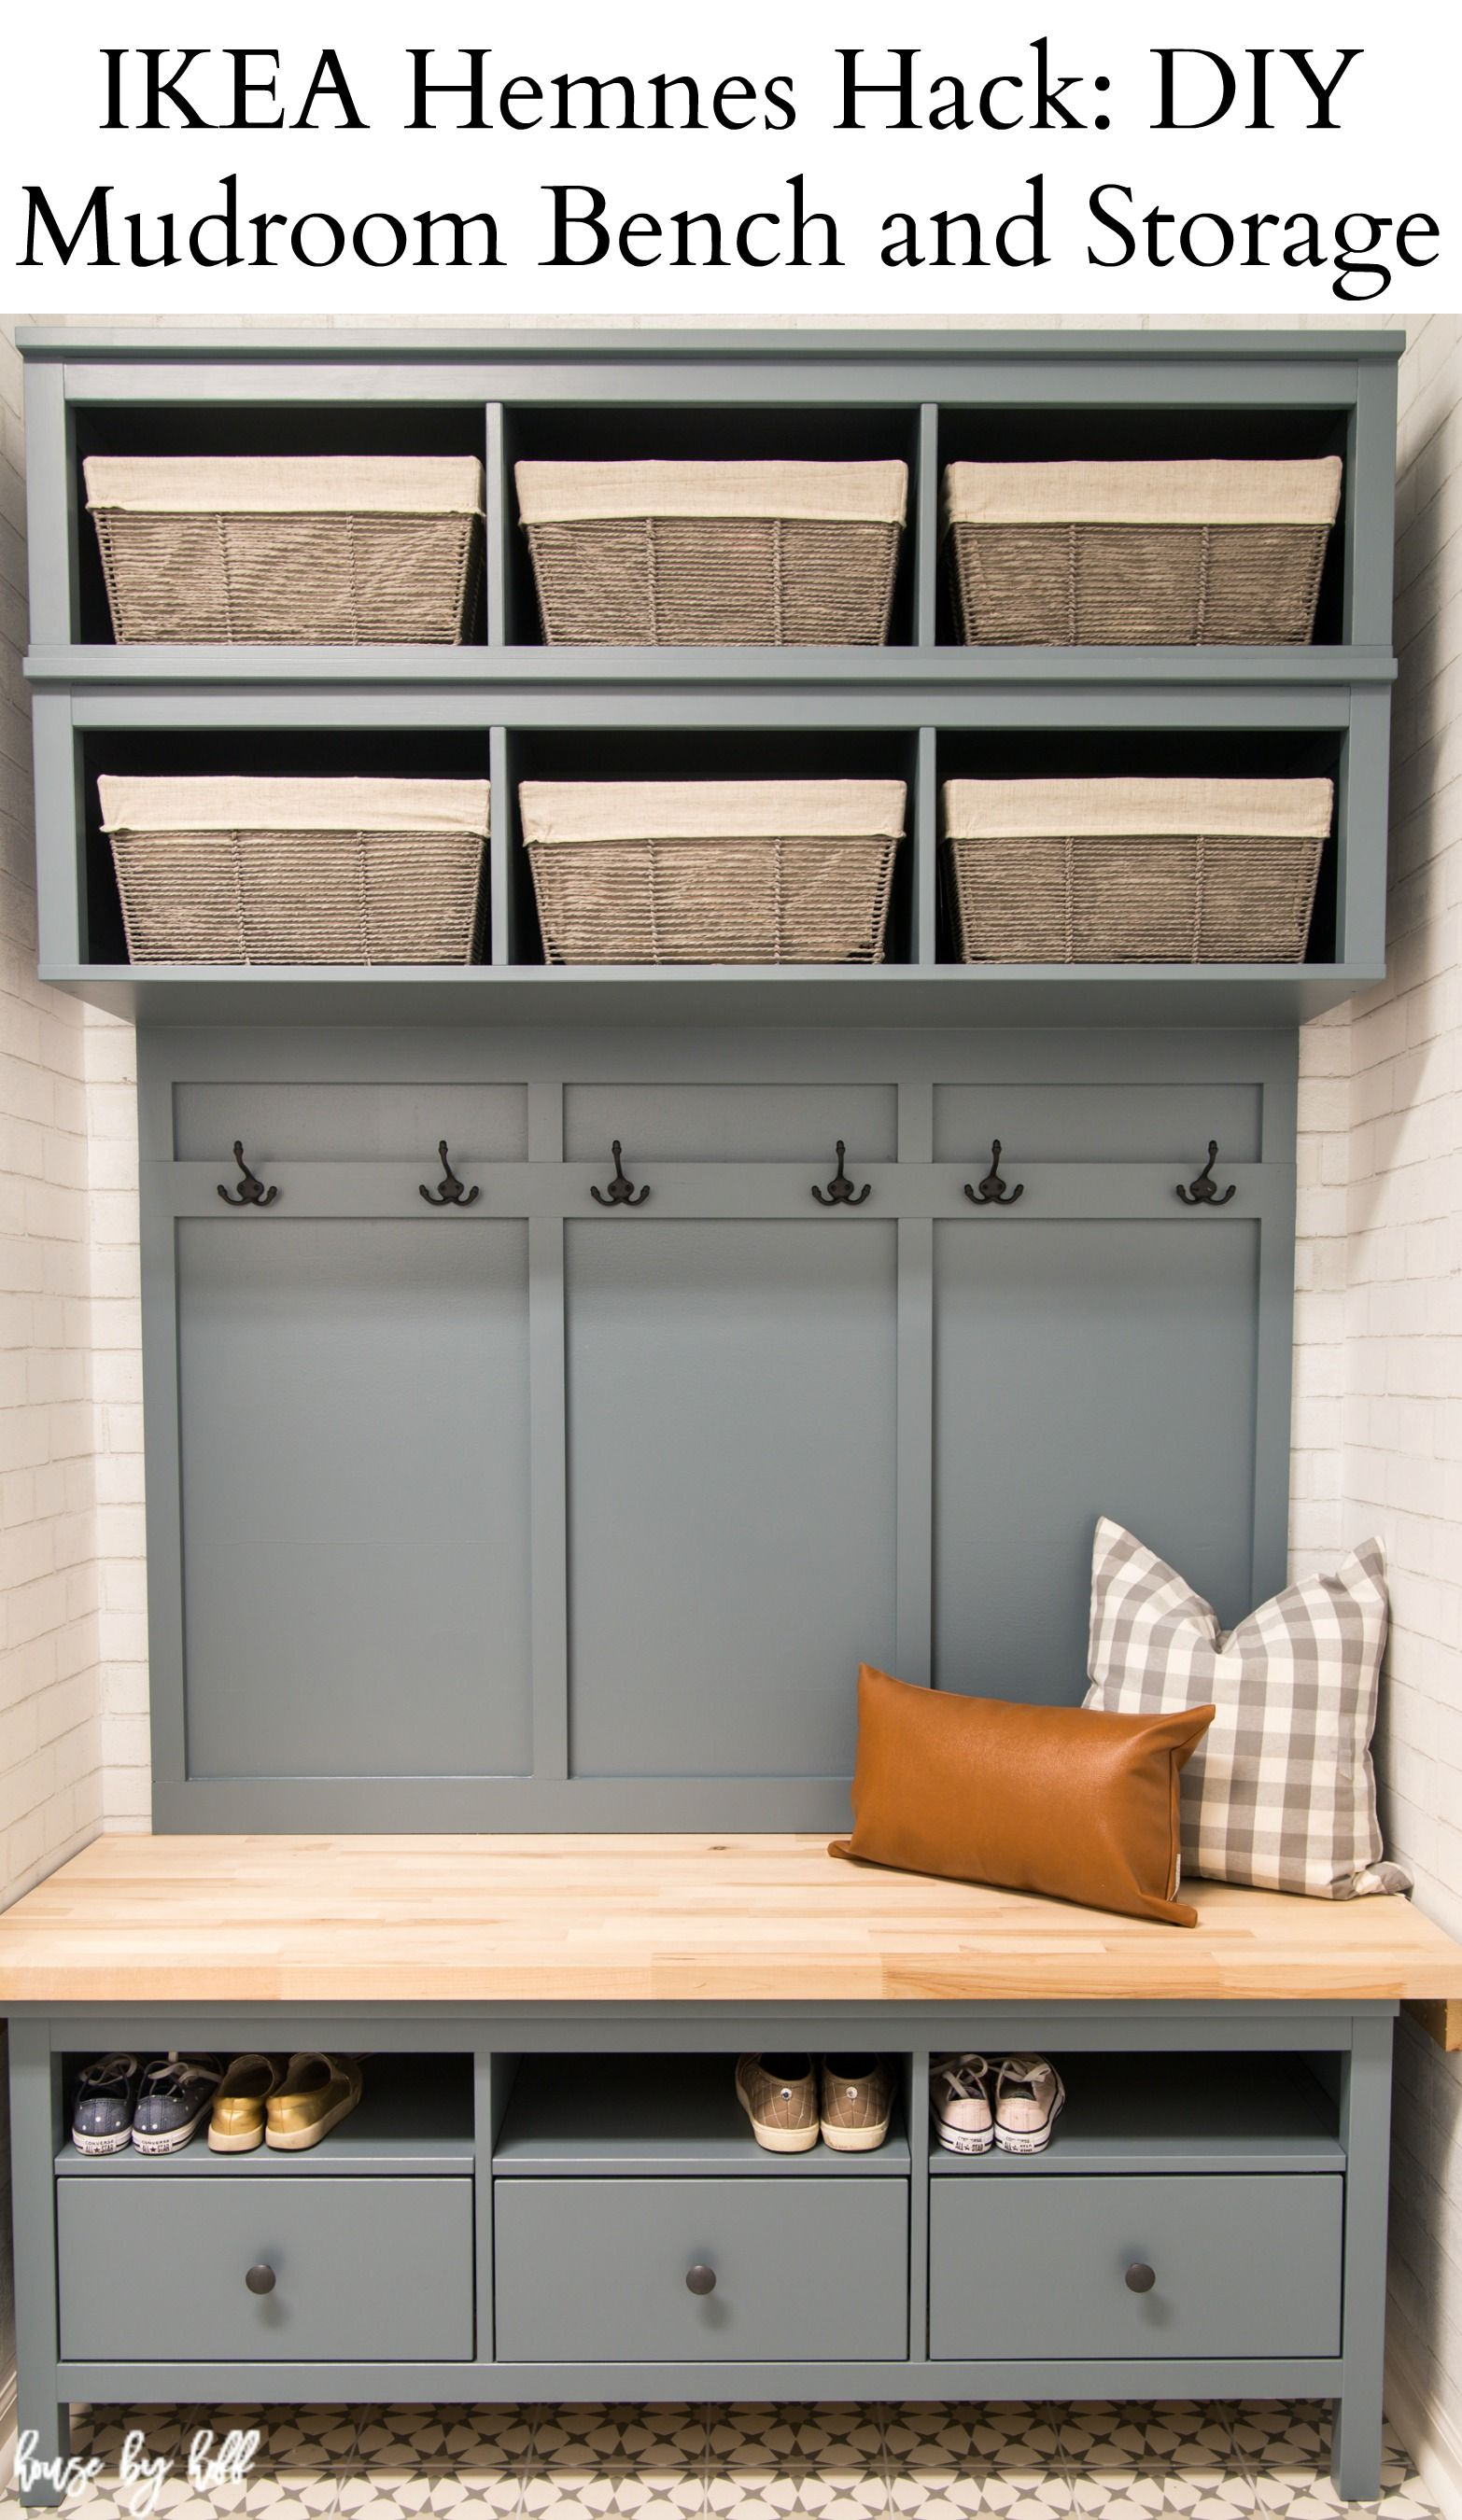 Ikea Hemnes Hack Diy Mudroom Bench And Storage House By Hoff